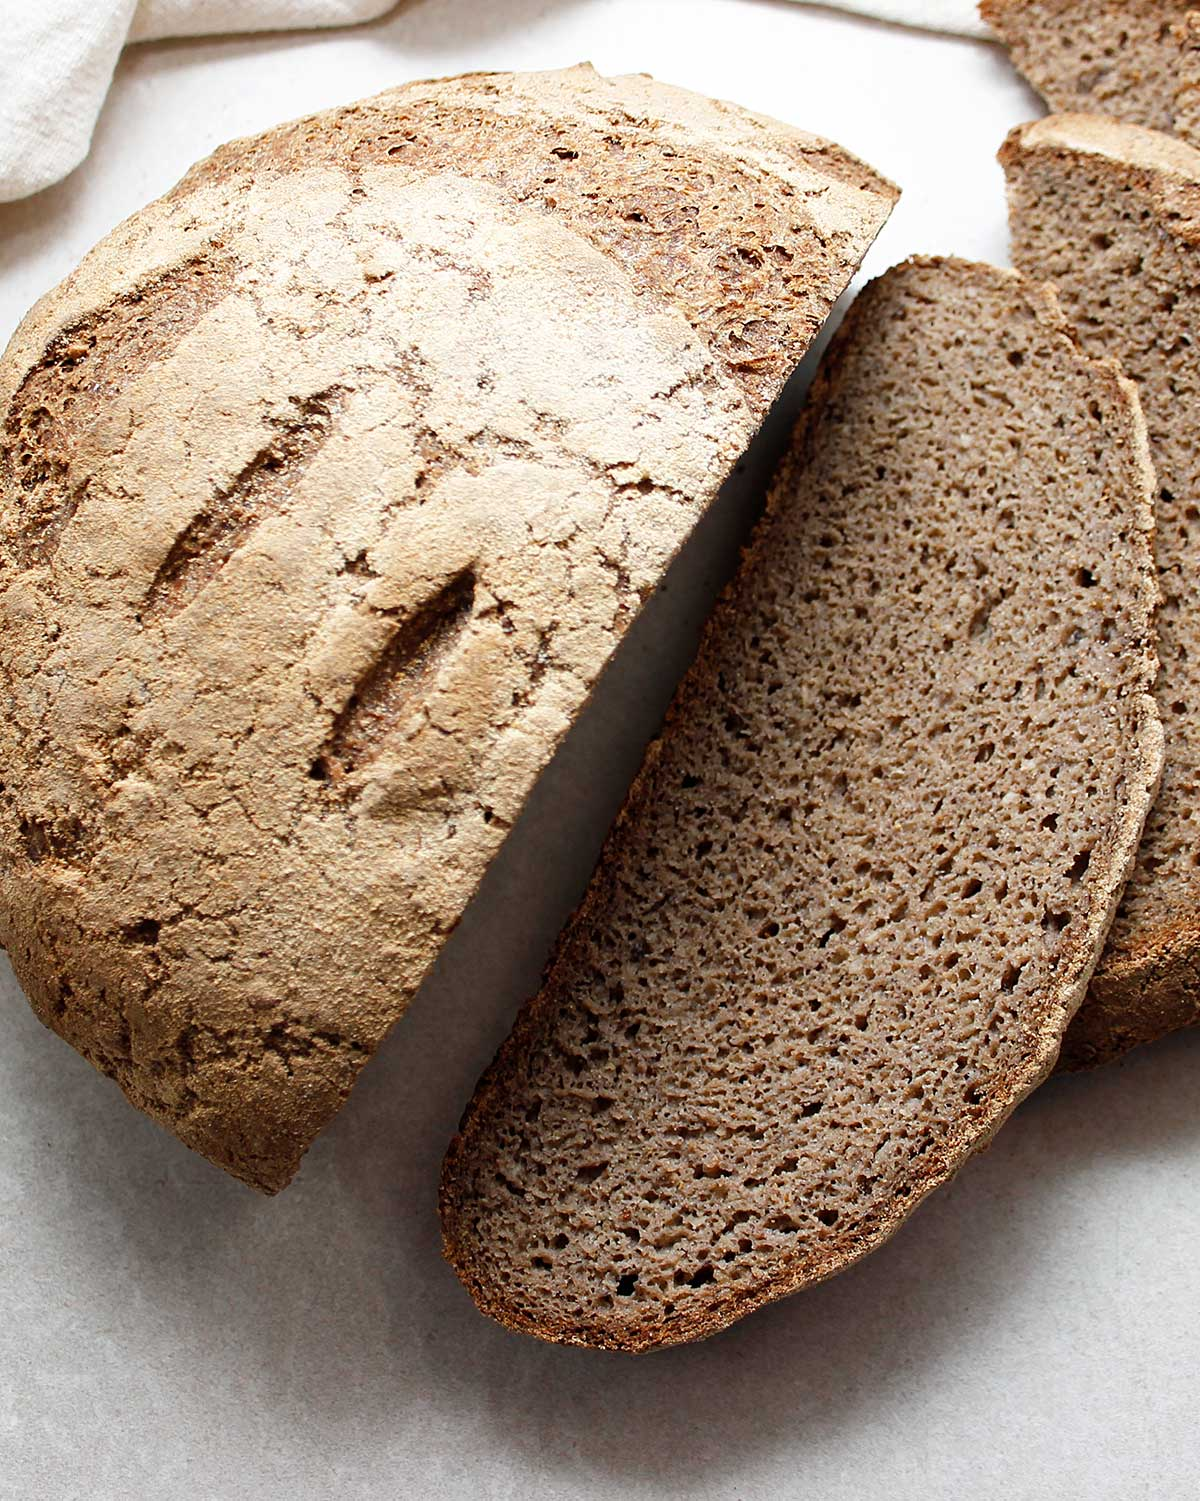 Sliced GF, grain-free and vegan sourdough bread